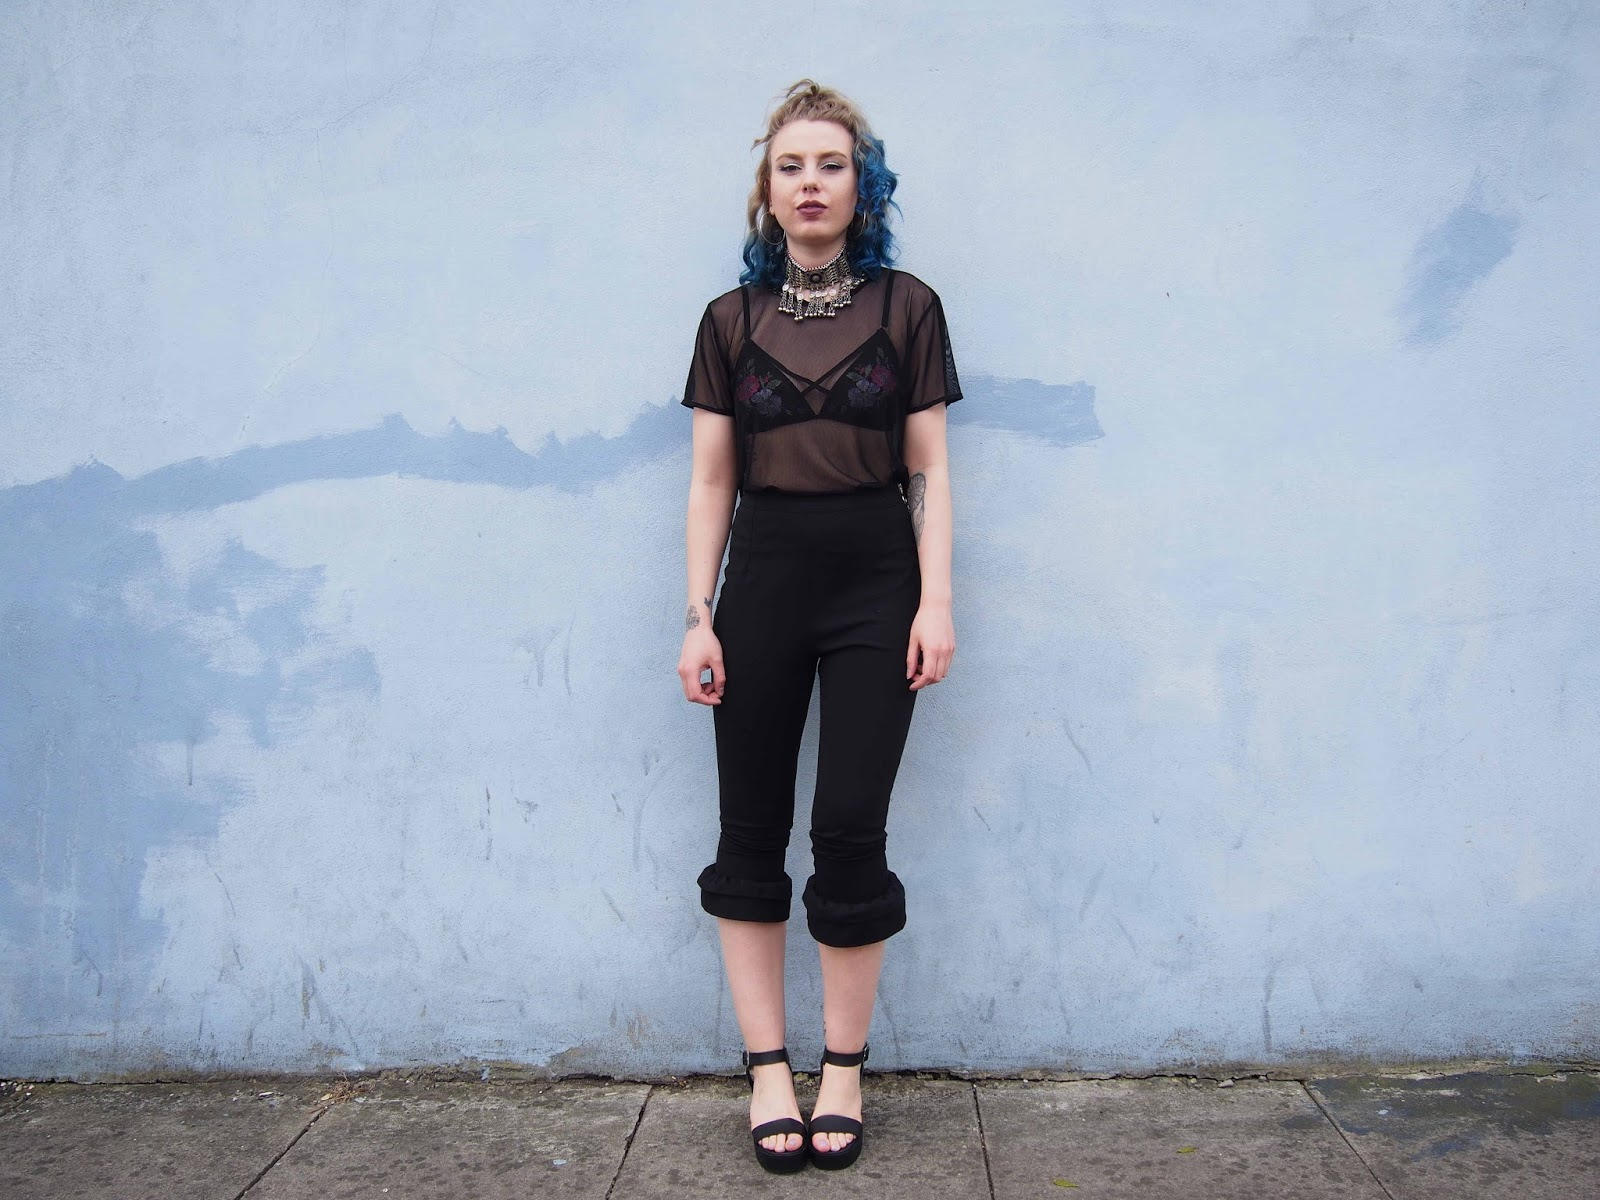 spring outfit, spring outfit ideas, fashion trend 2017, 2017 ss fashion trend, gunge outfit ideas, grunge outfits, chunky shoes, mesh top, harness bralette